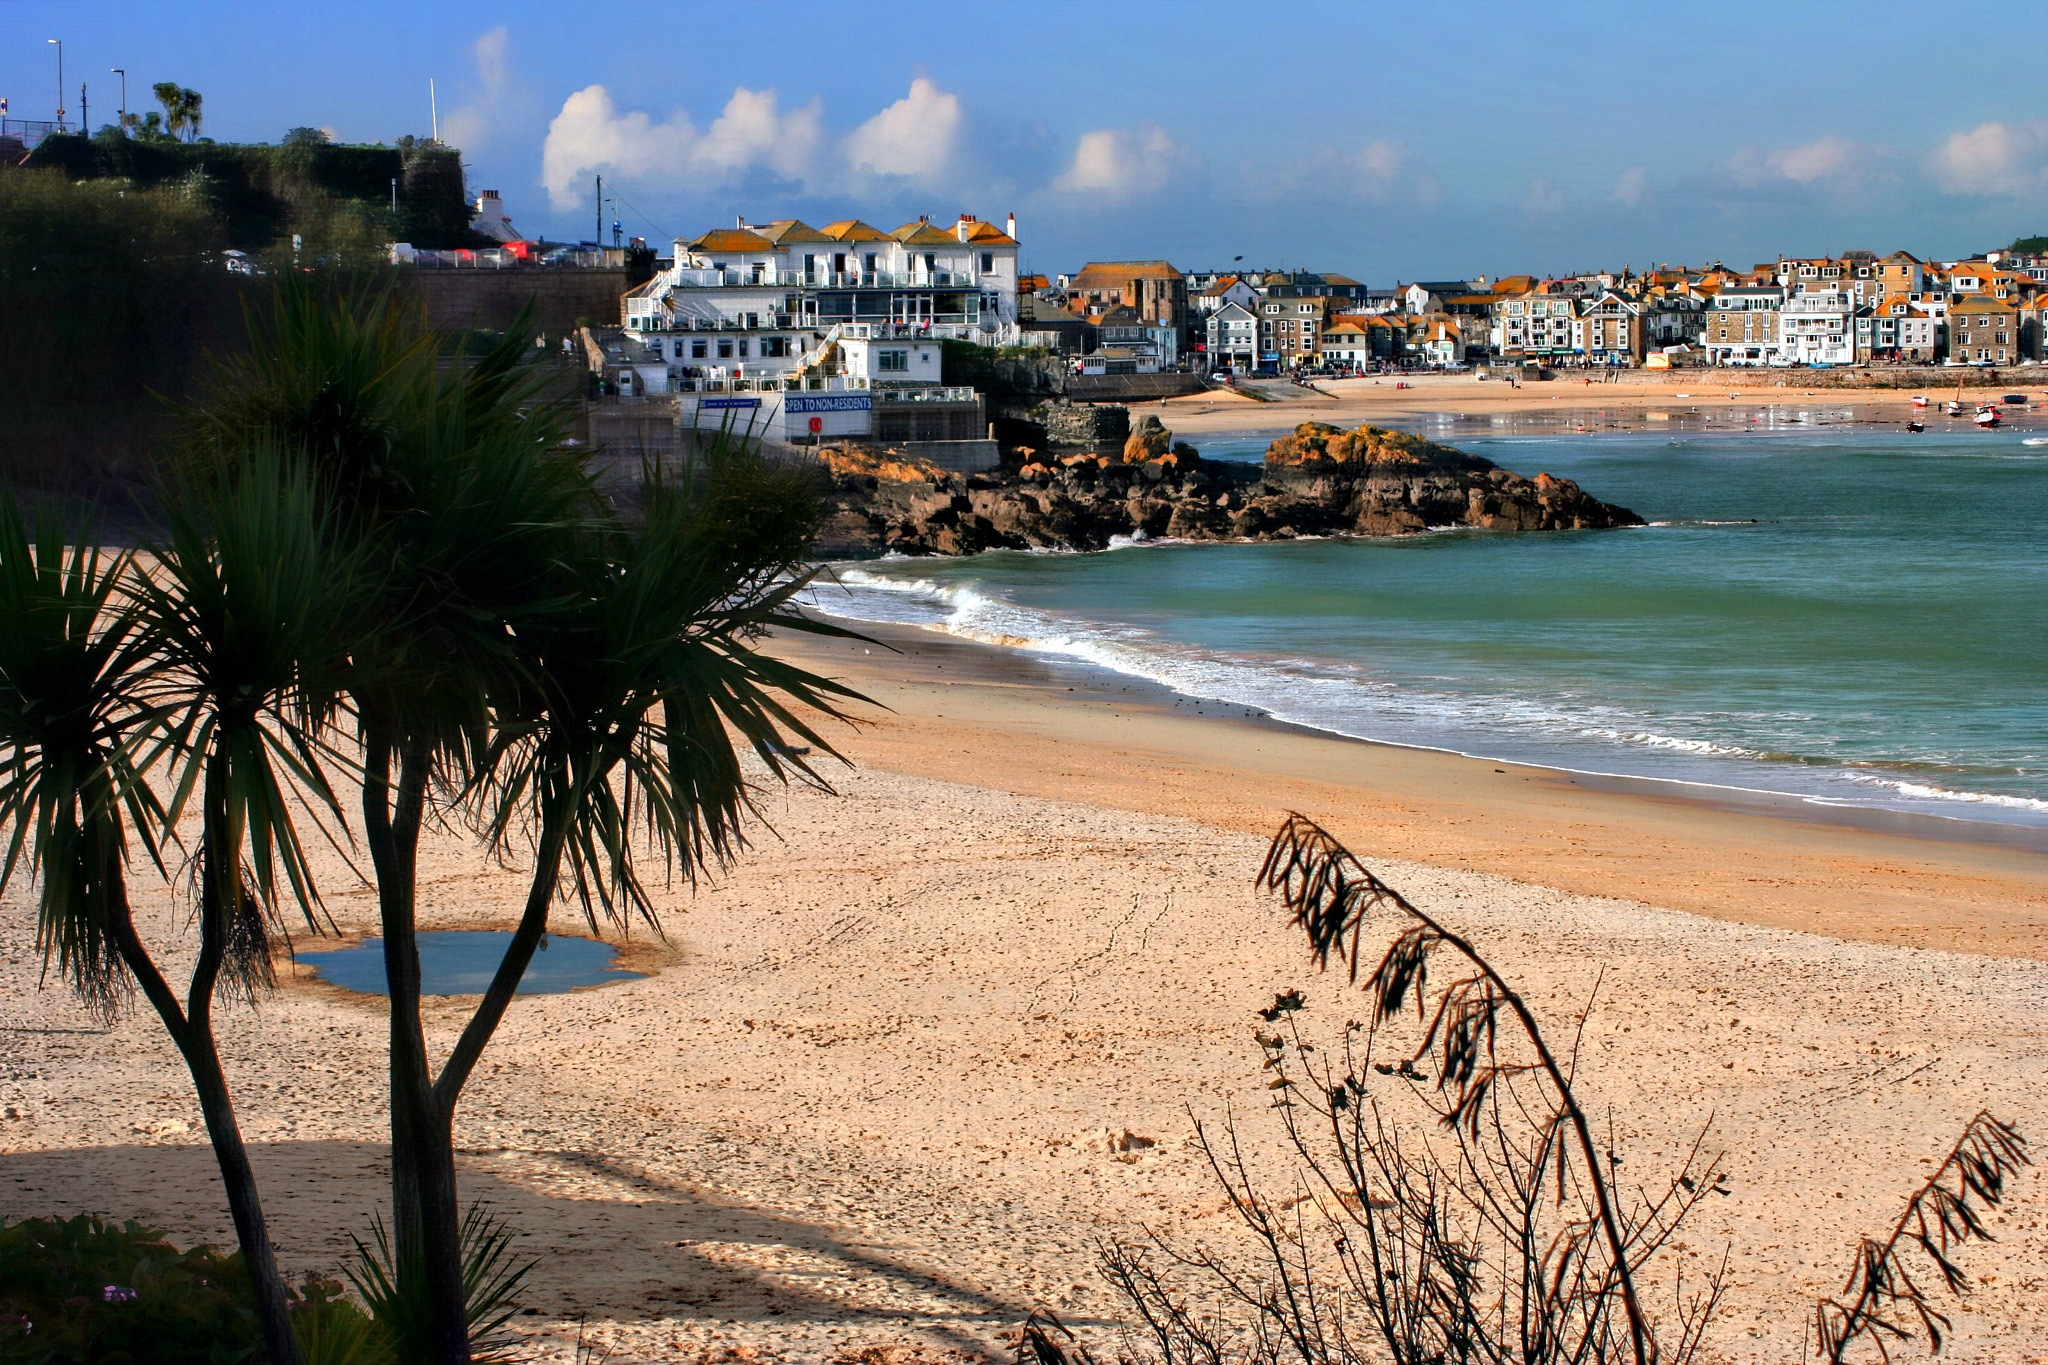 st ives, a beautiful place. by Paul Gast